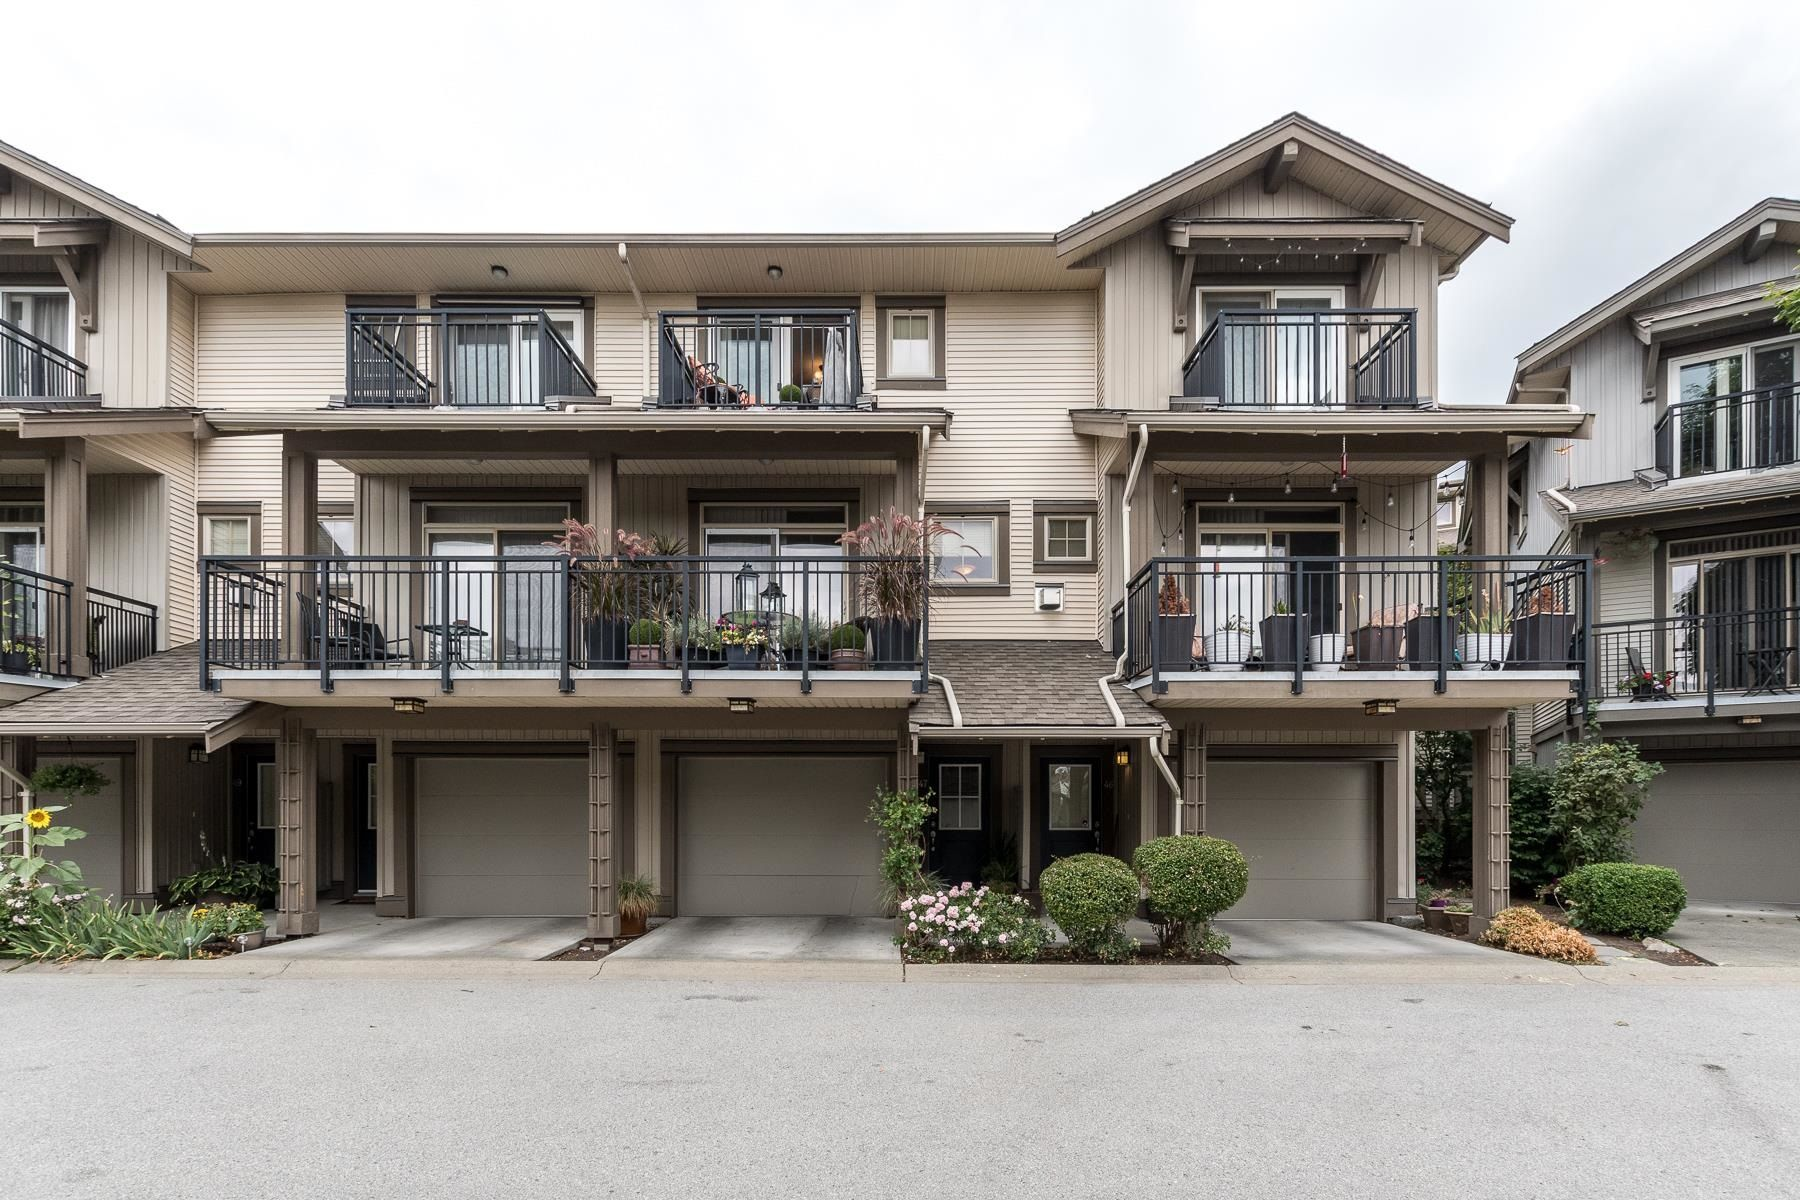 """Main Photo: 47 20326 68 Avenue in Langley: Willoughby Heights Townhouse for sale in """"SUNPOINTE"""" : MLS®# R2610836"""